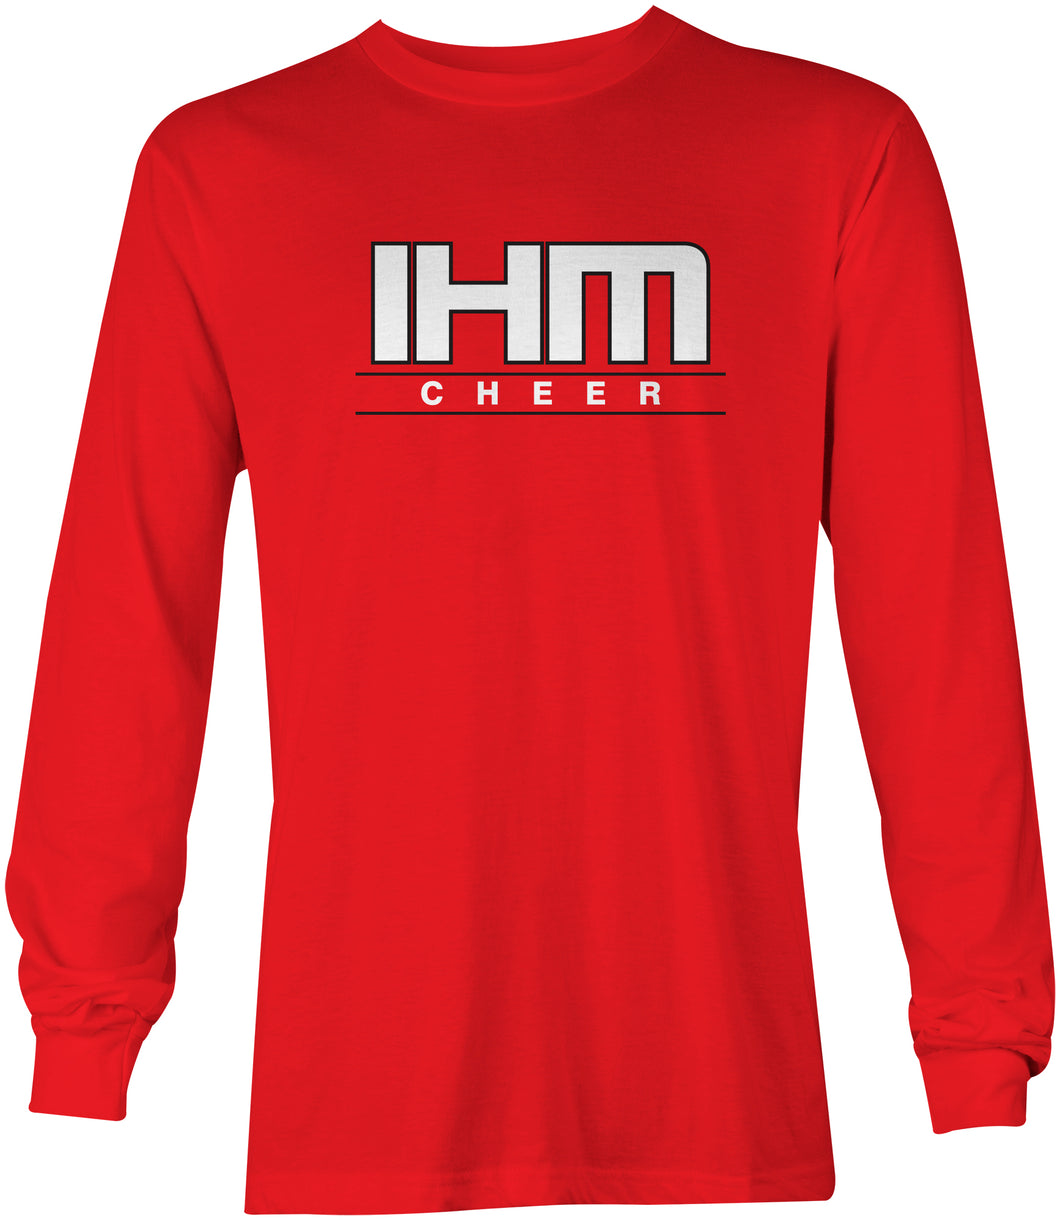 Red Cheer Long Sleeve T-Shirt